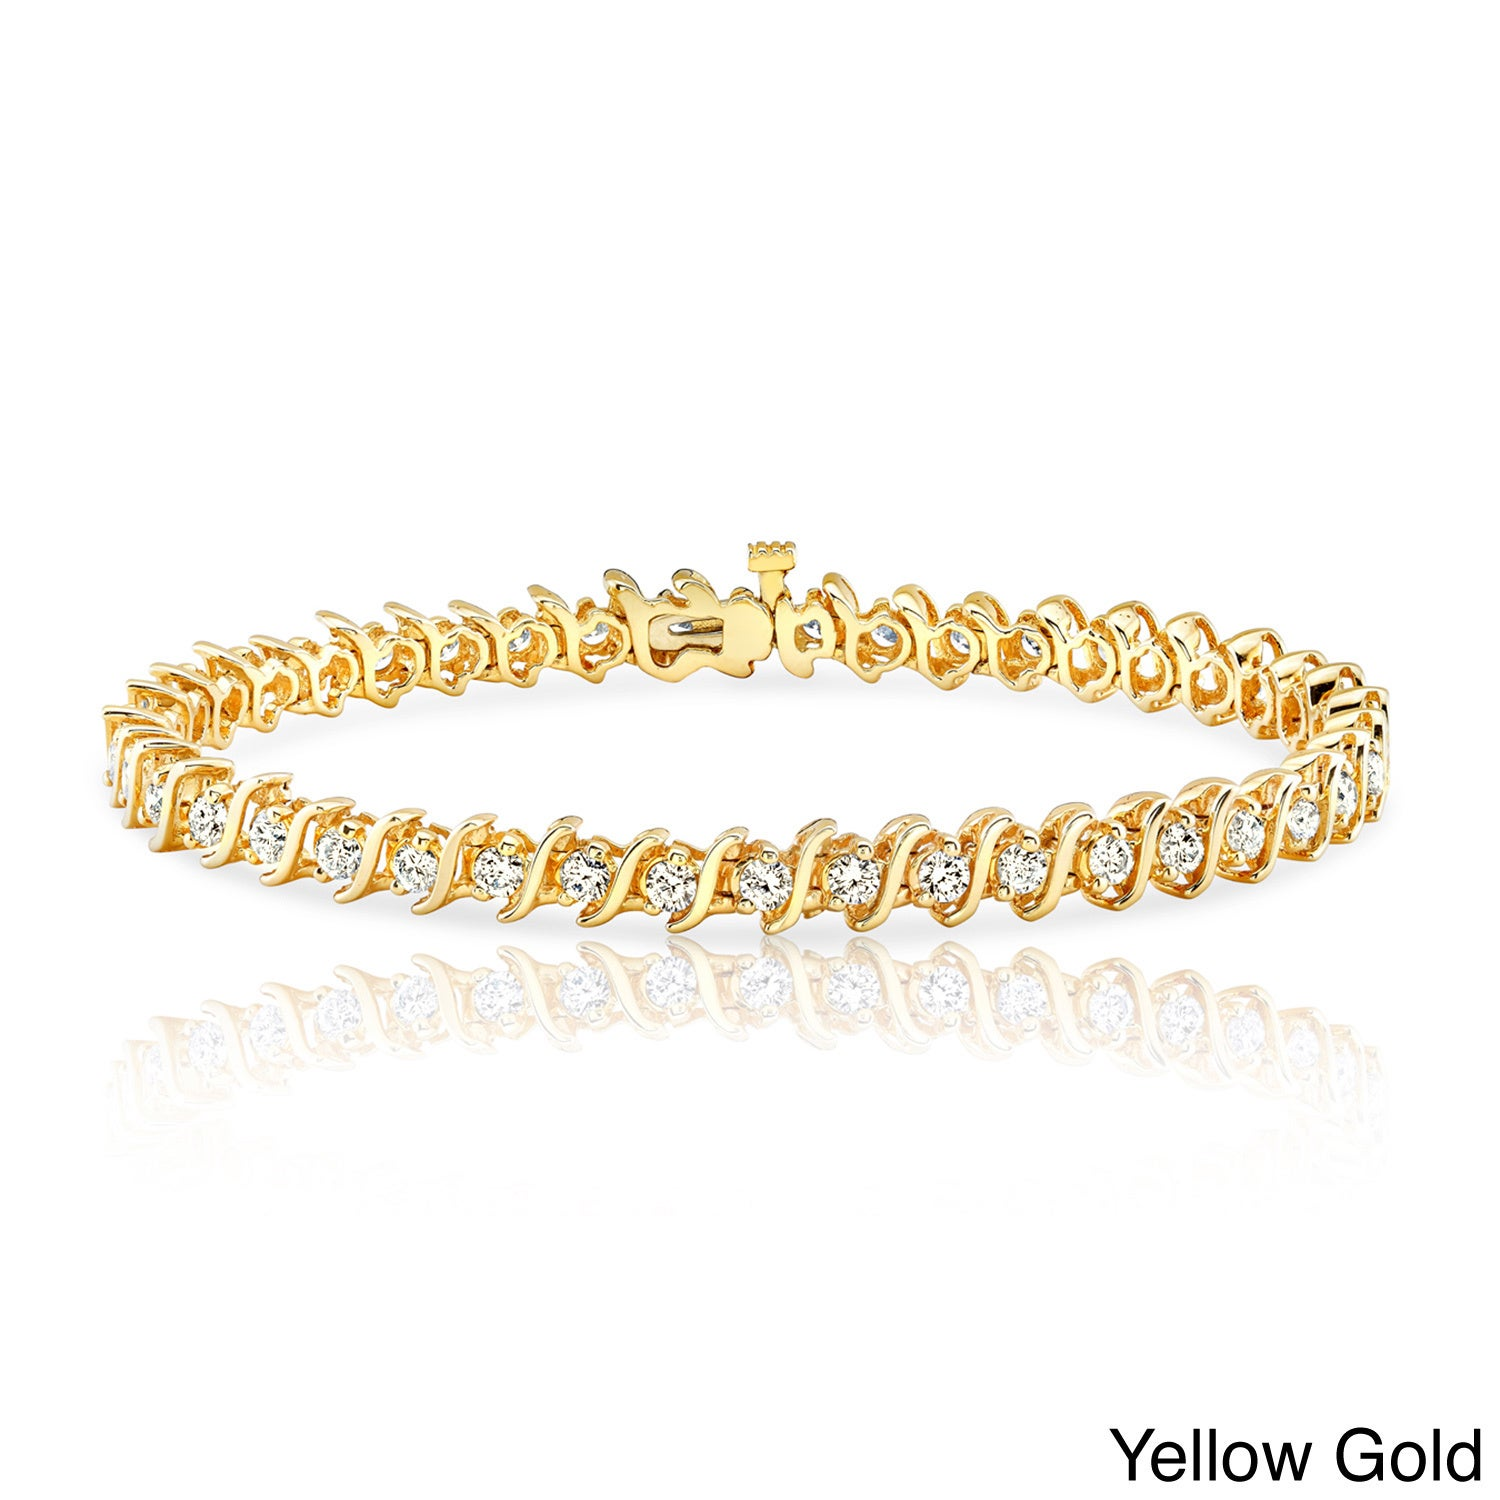 bangles pin karat this gold bracelet ensemble bangle with enhance mesh any pretty bracelets